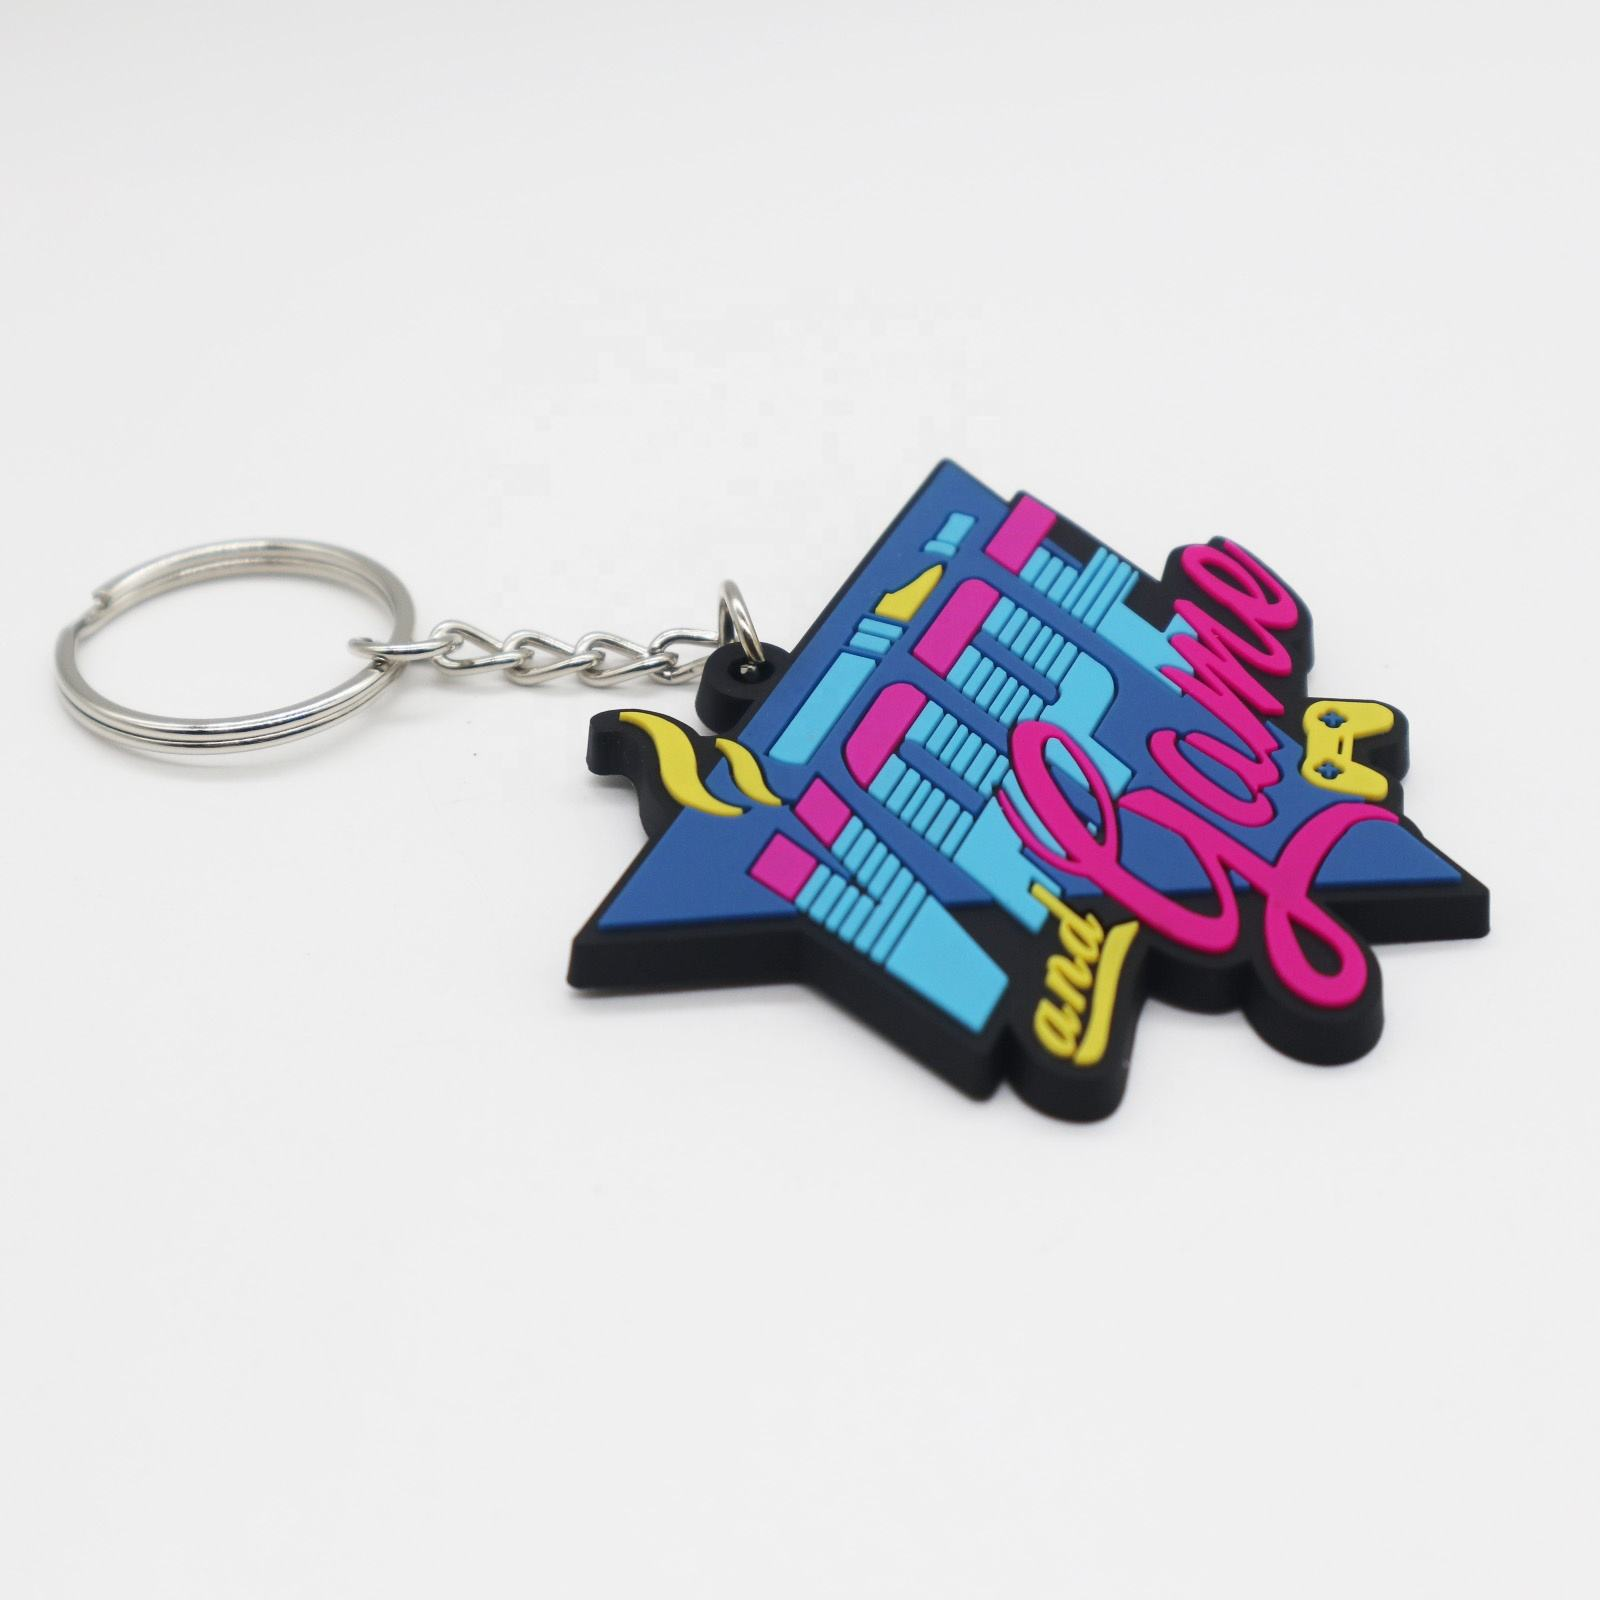 Custom Private Logo Rubber 2d Soft Pvc Keychain Rubber Plastic Key Chain Customized Name Pvc Keychain With Metal Ring